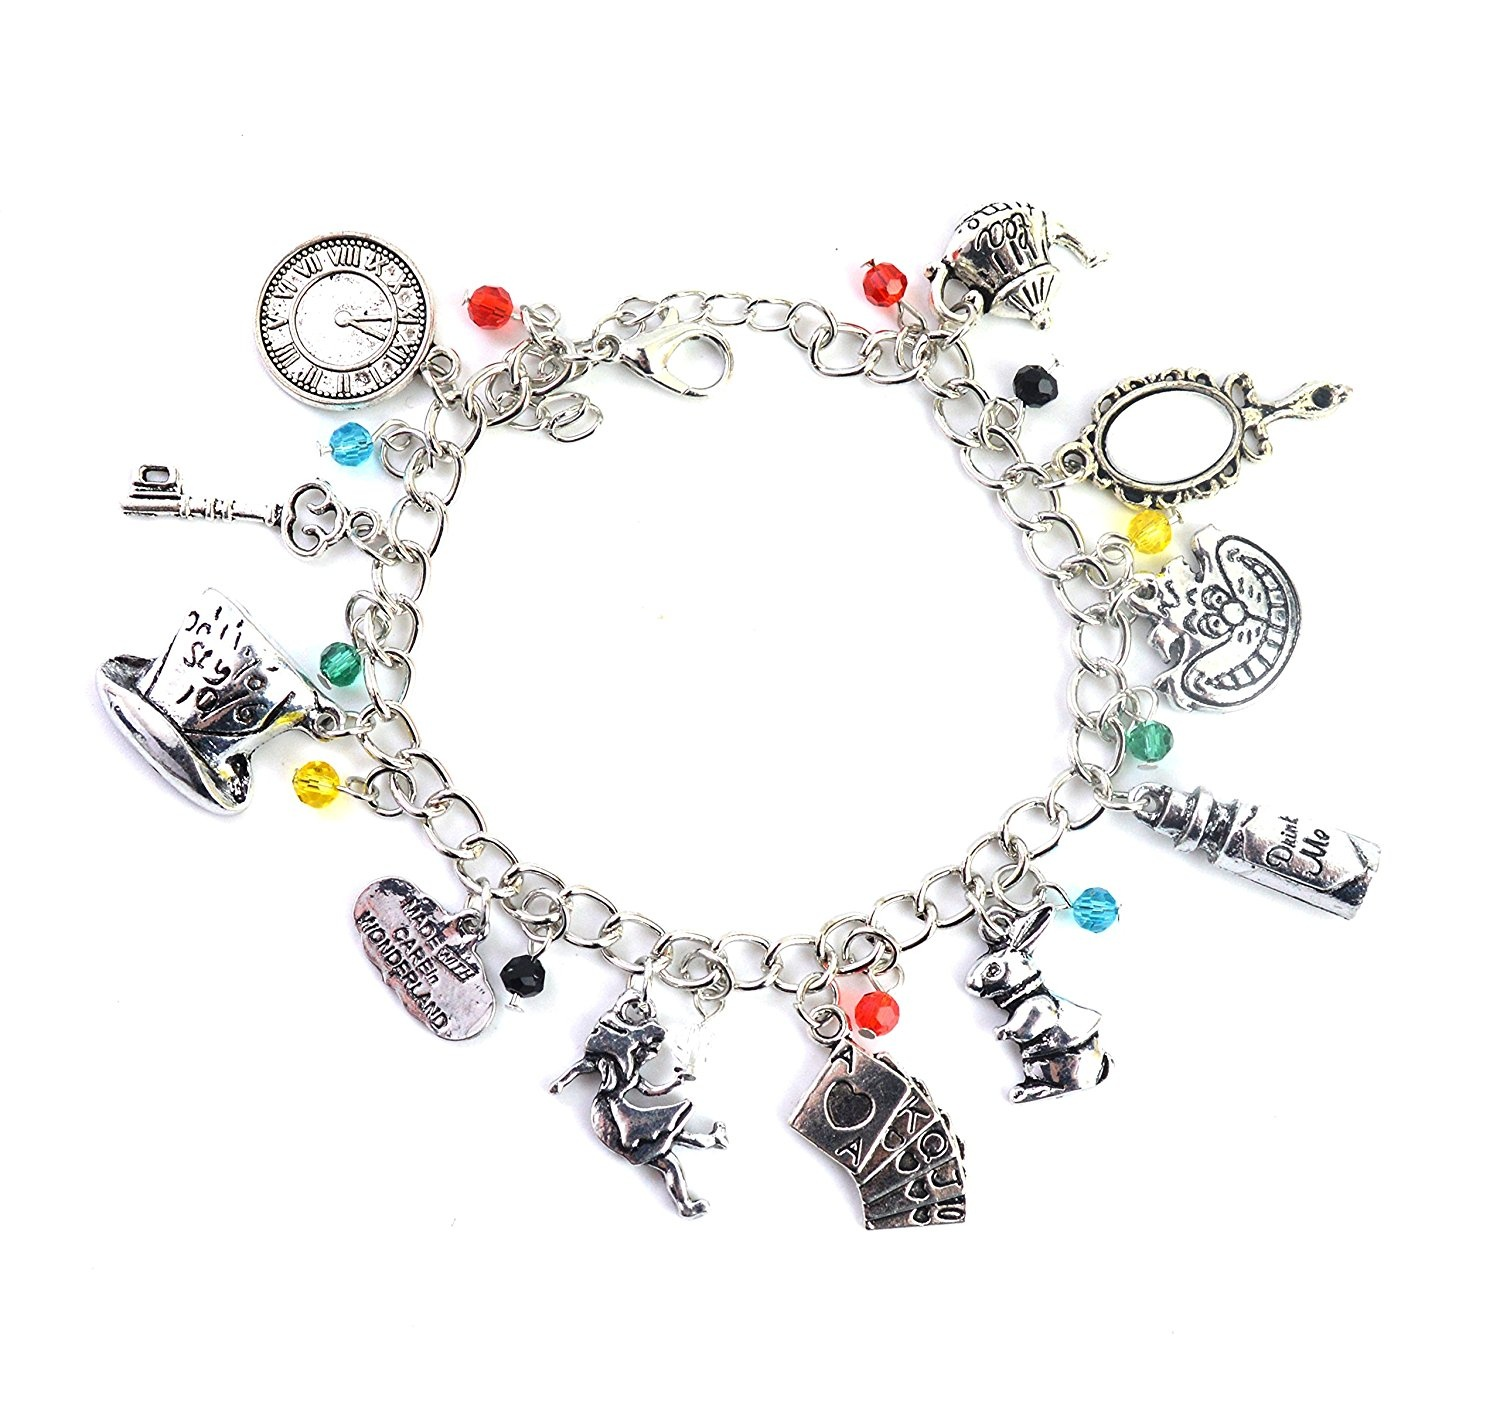 Alice In Wonderland Charm Bracelet Jewellery For Girls With Gift Box